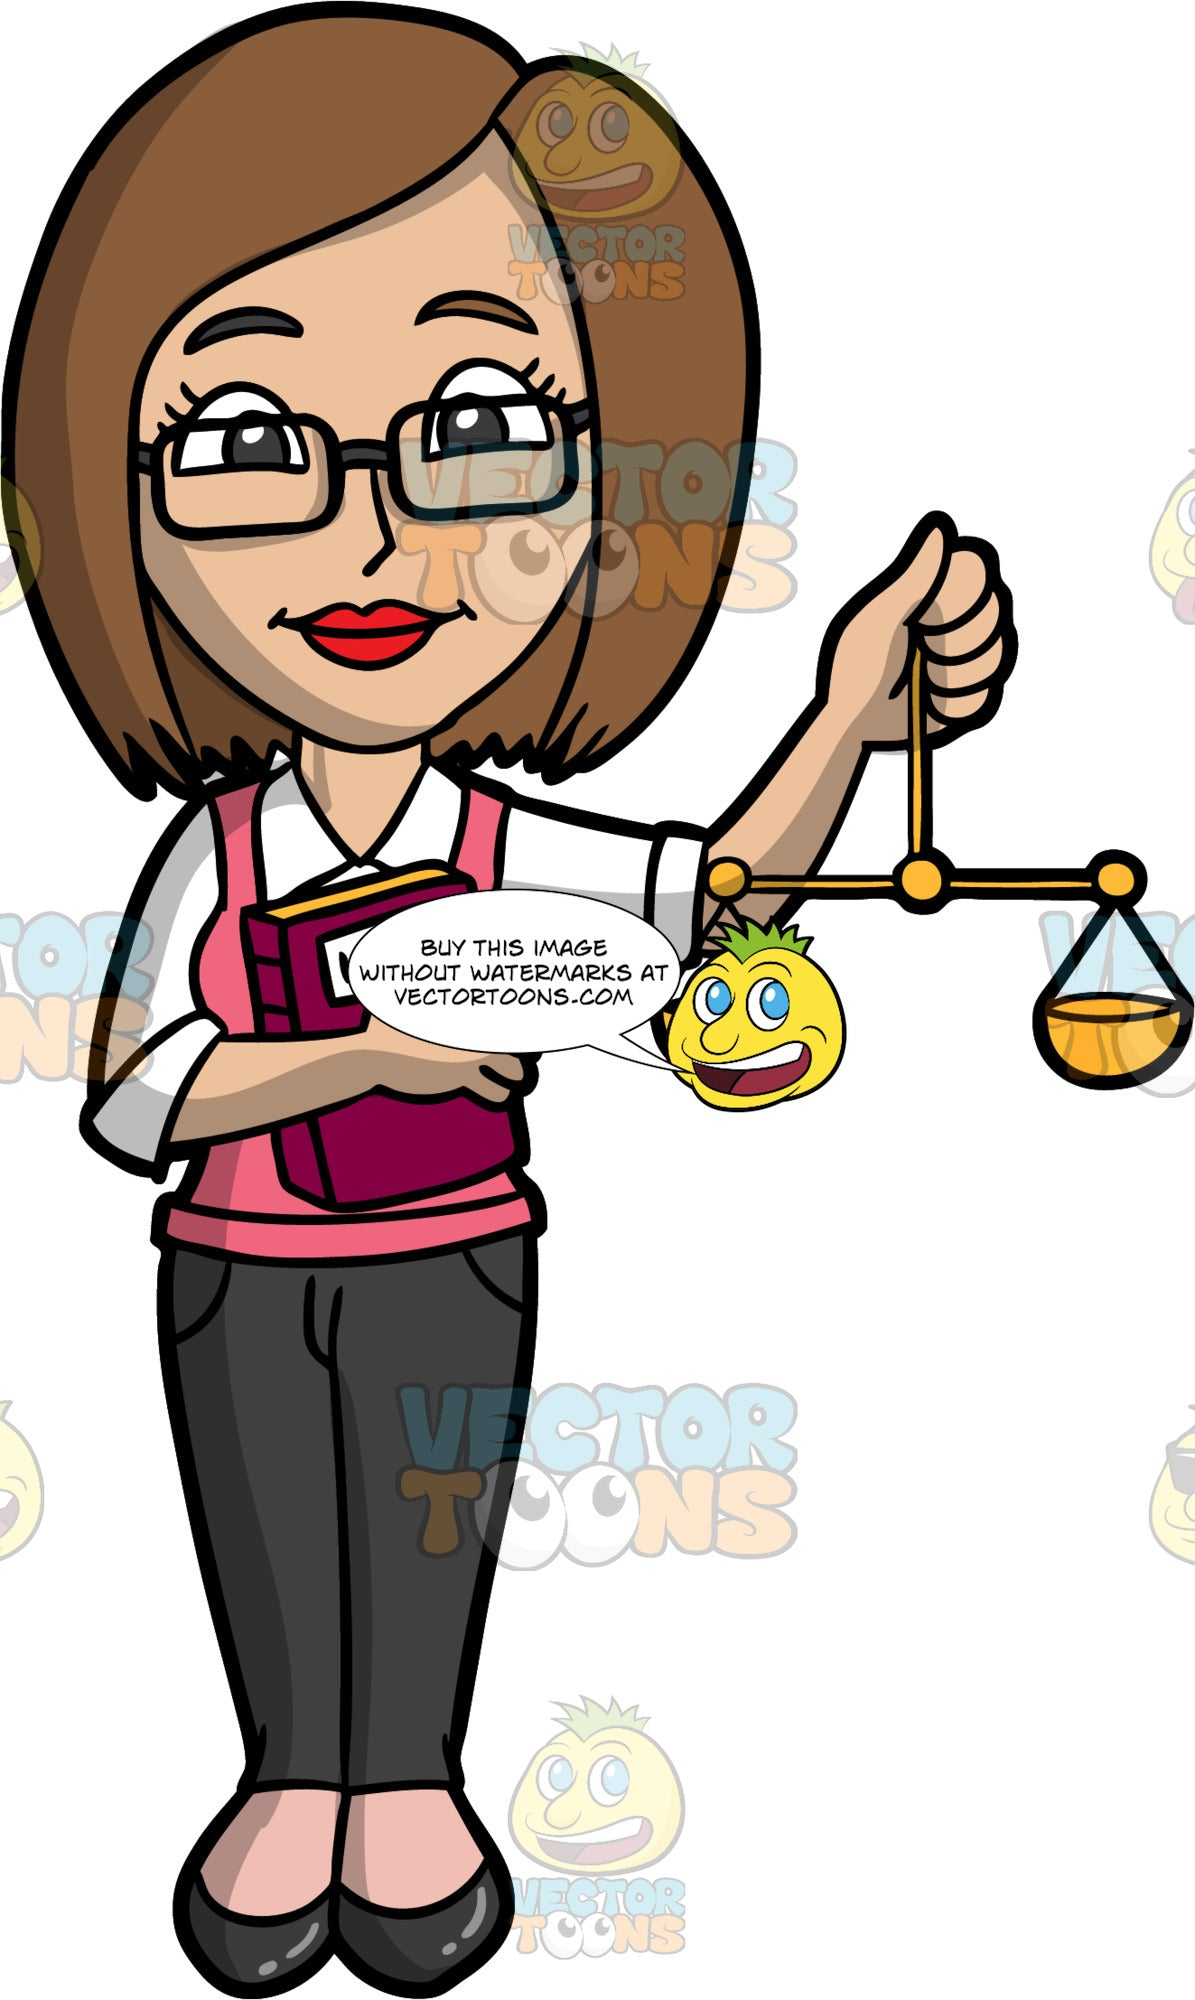 A Female Lawyer Holding A Scale And A Law Book. A woman with shoulder length brown hair, wearing dark gray pants, a pink vest over a white collared shirt, black flat shoes, and eyeglasses, holding up a gold scale with one hand, and a law book with the other